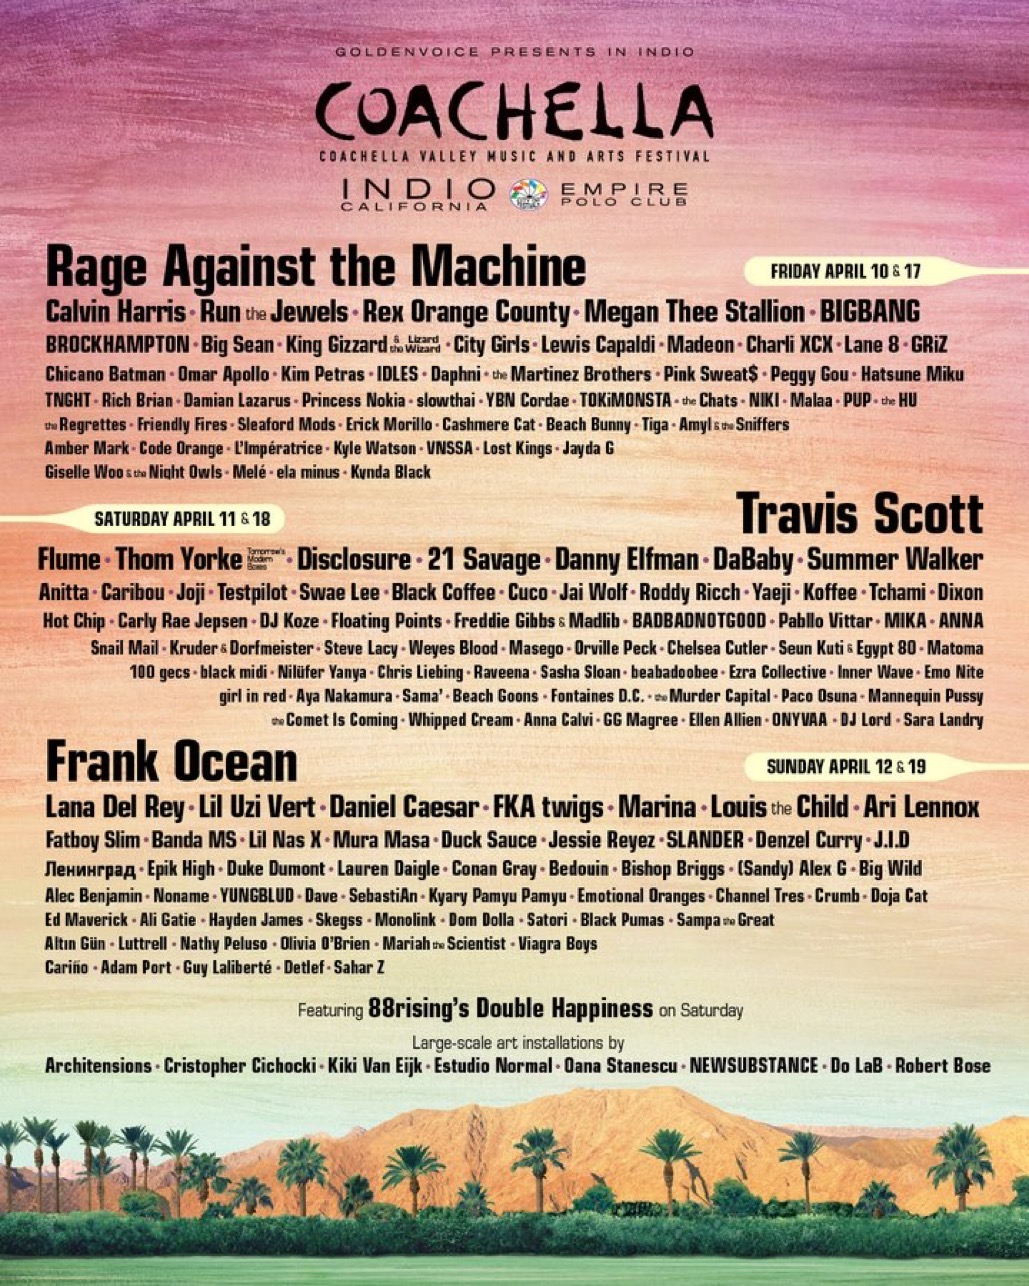 coachella 2020 official lineup poster